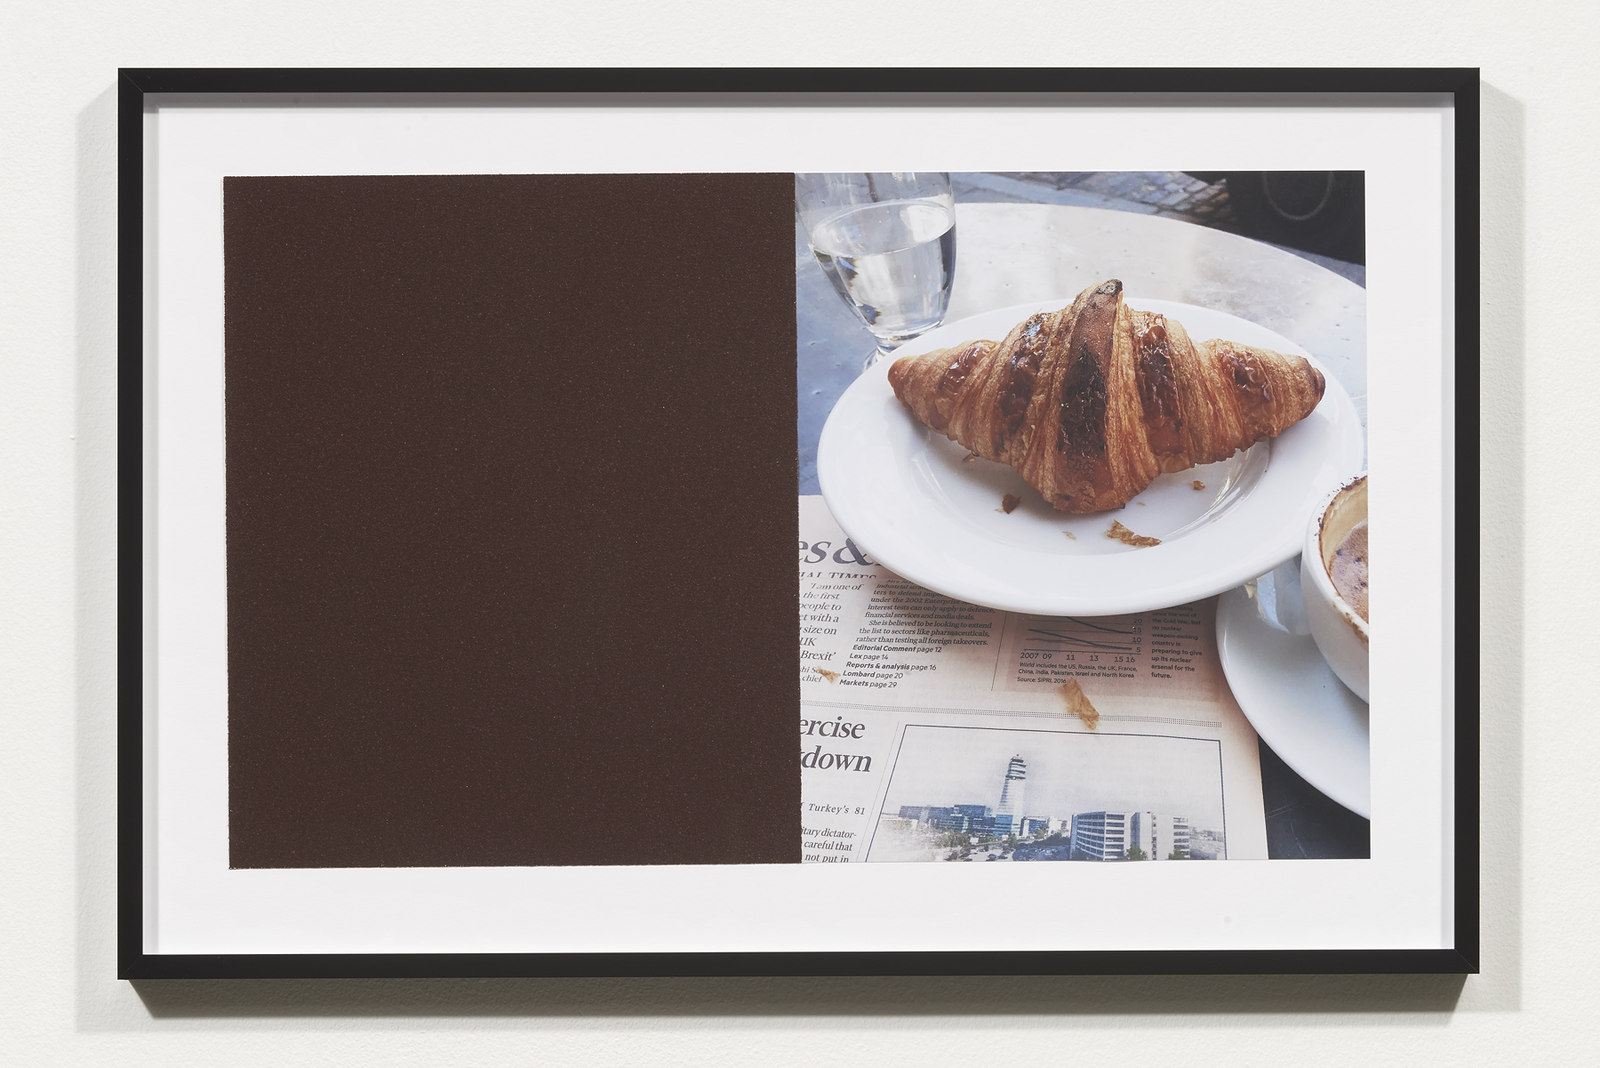 Wermers_Croissants & Architecture #28, 2016_C-print, sandpaper sheet, framed_14 3_8 x 21 1_2 in_NW00069PG